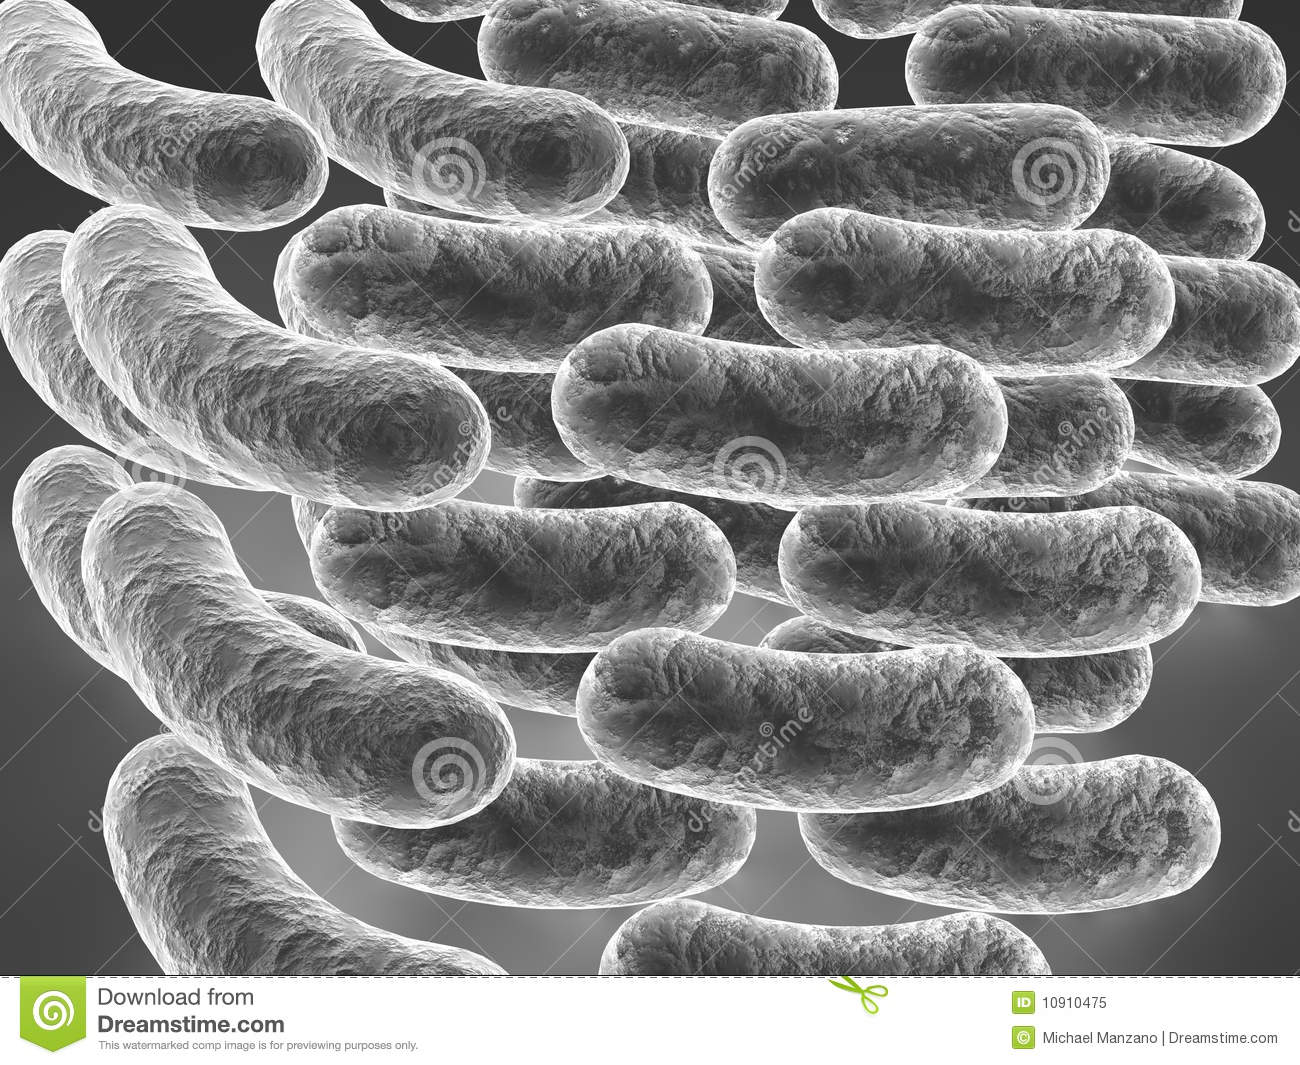 Colon Diagram Anantomy Of Digestiive System Physiology Ex le Best Detail Ideas Right Colic Cecum Free together with Oper C3 B3 lac likewise 04dnareplication as well 111421 All About Prokaryotes And Eukaryotes also 2189544. on e coli diagram labeled